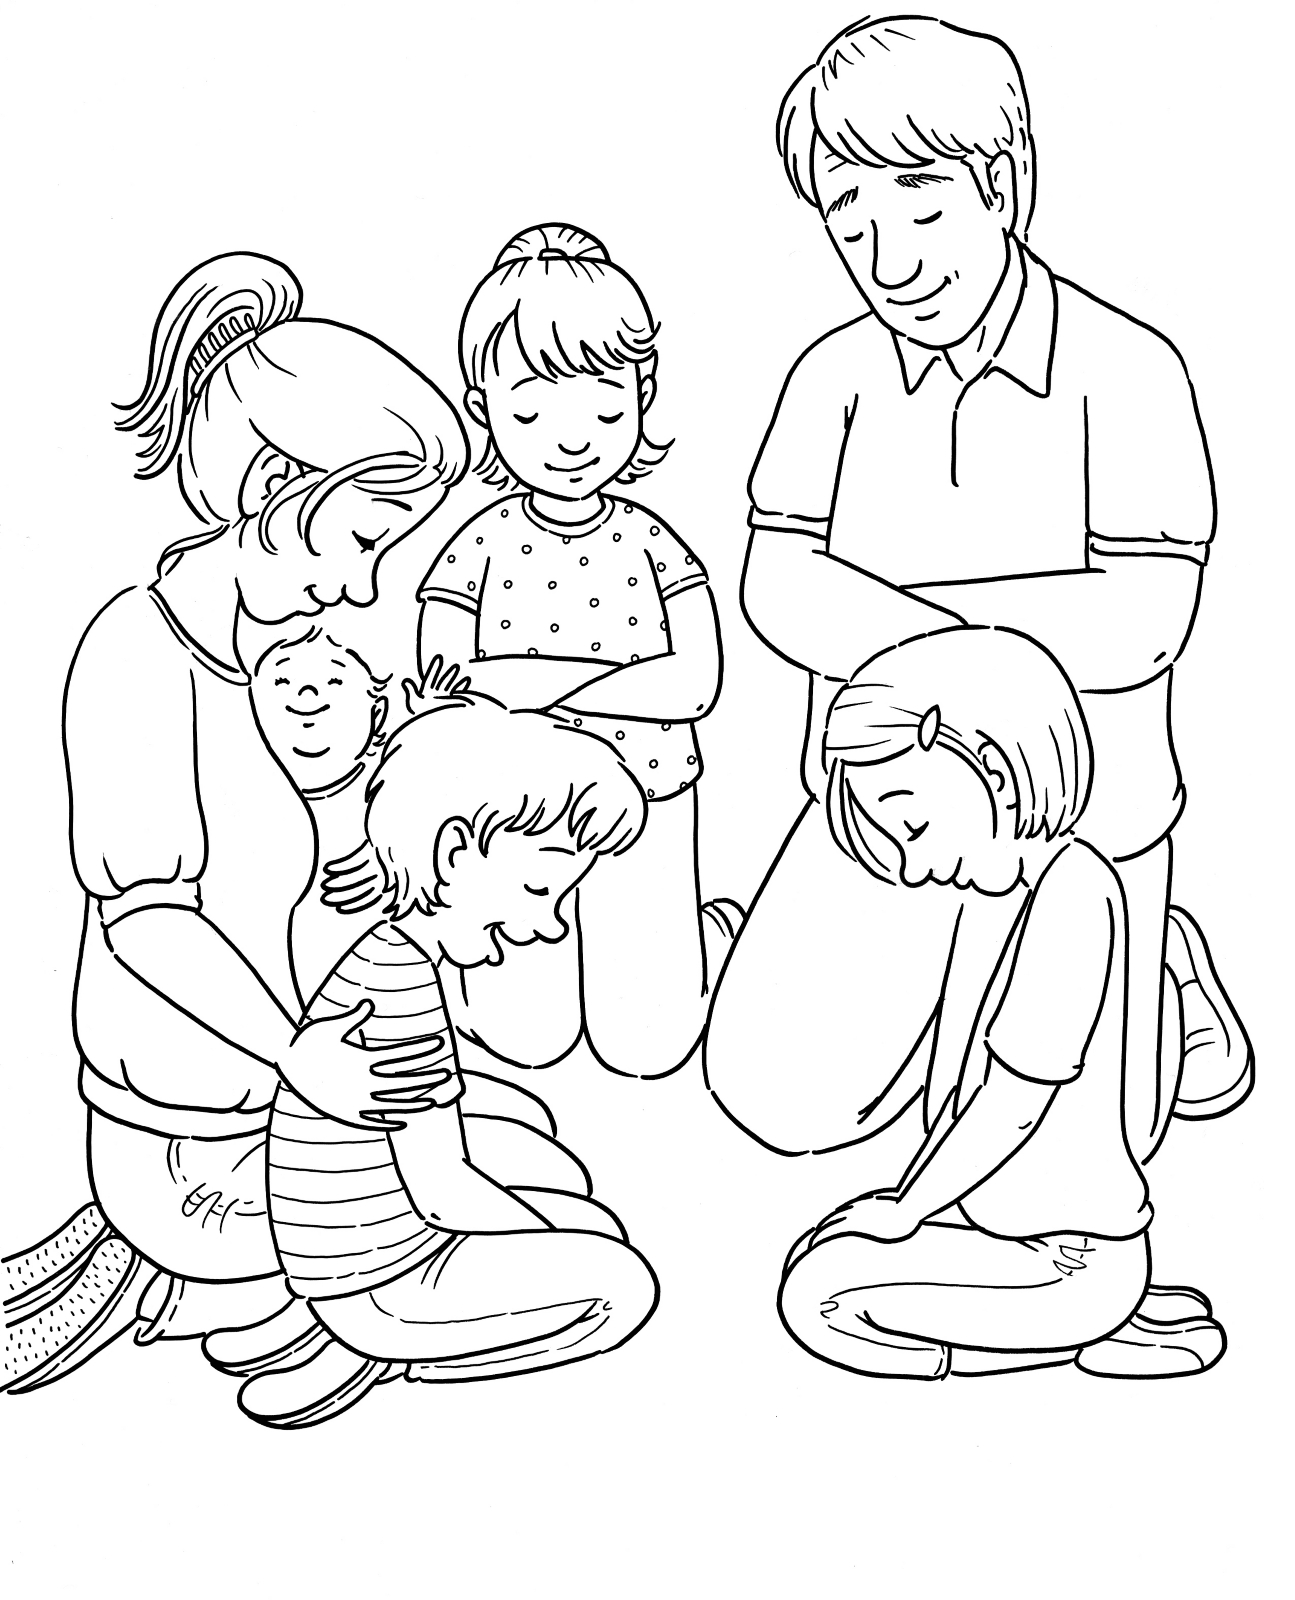 kids prayer coloring pages - photo#20